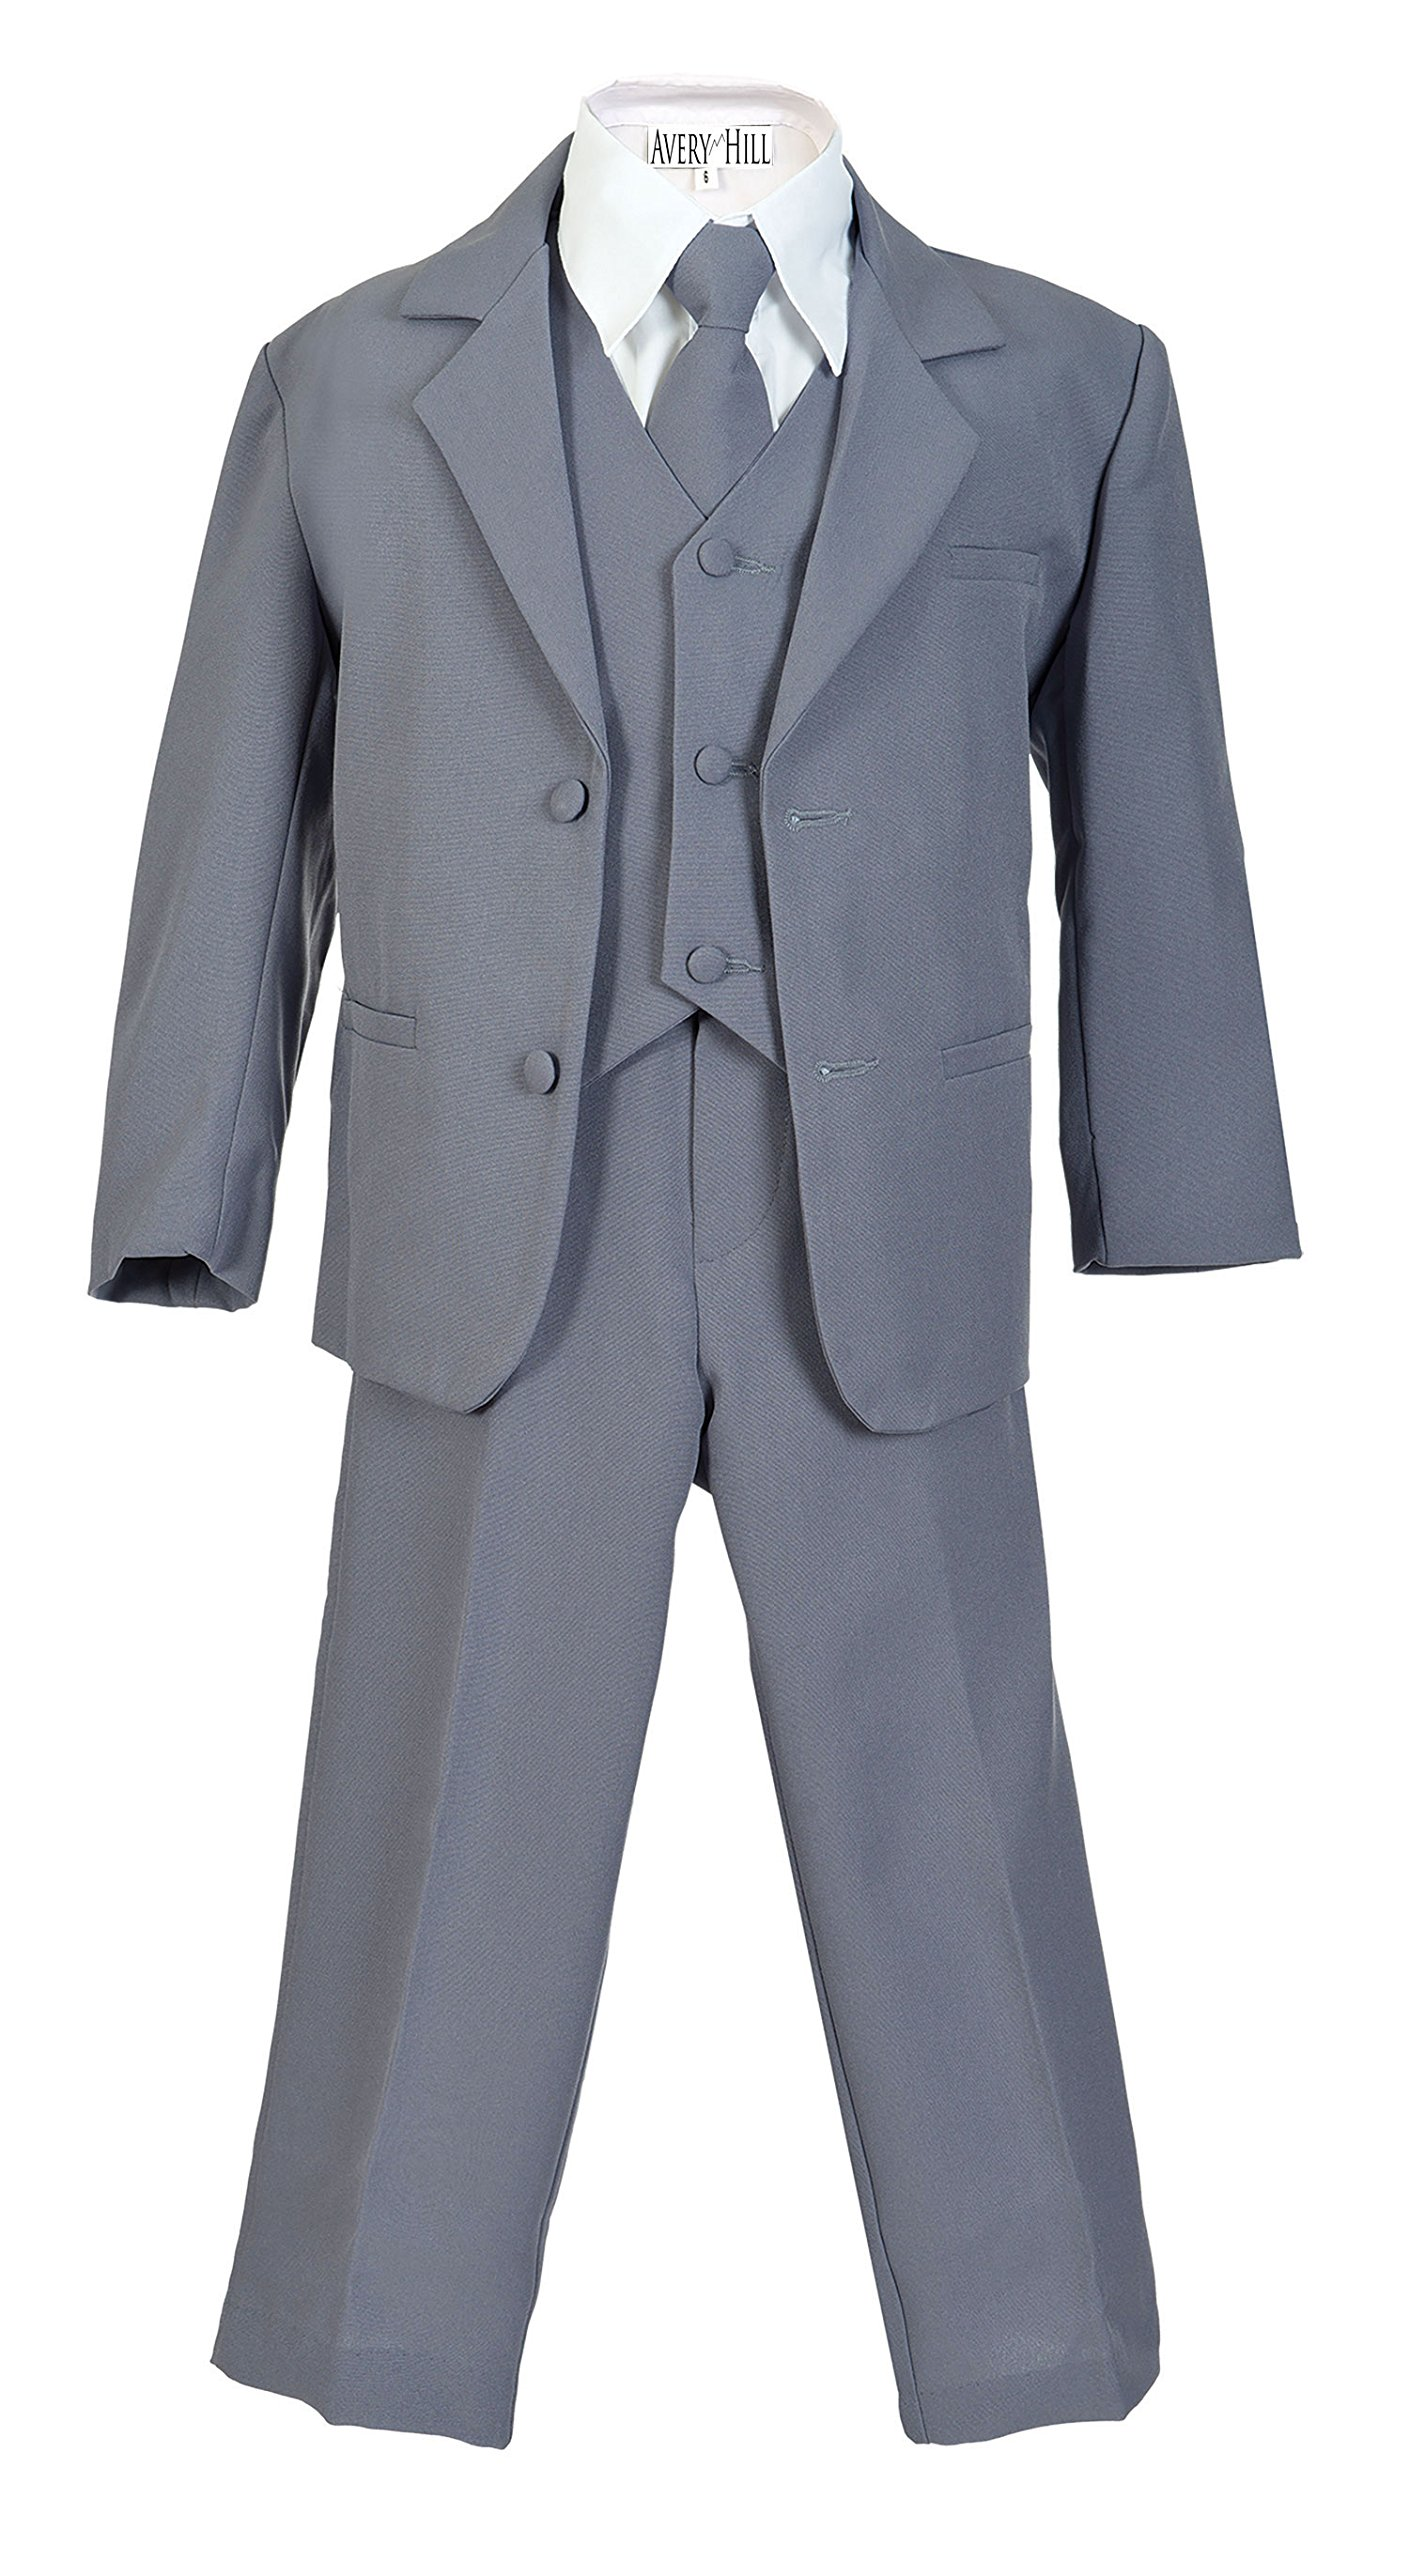 Avery Hill Boys Formal 5 Piece Suit with Shirt and Vest SLATEGY 10 by Avery Hill (Image #1)